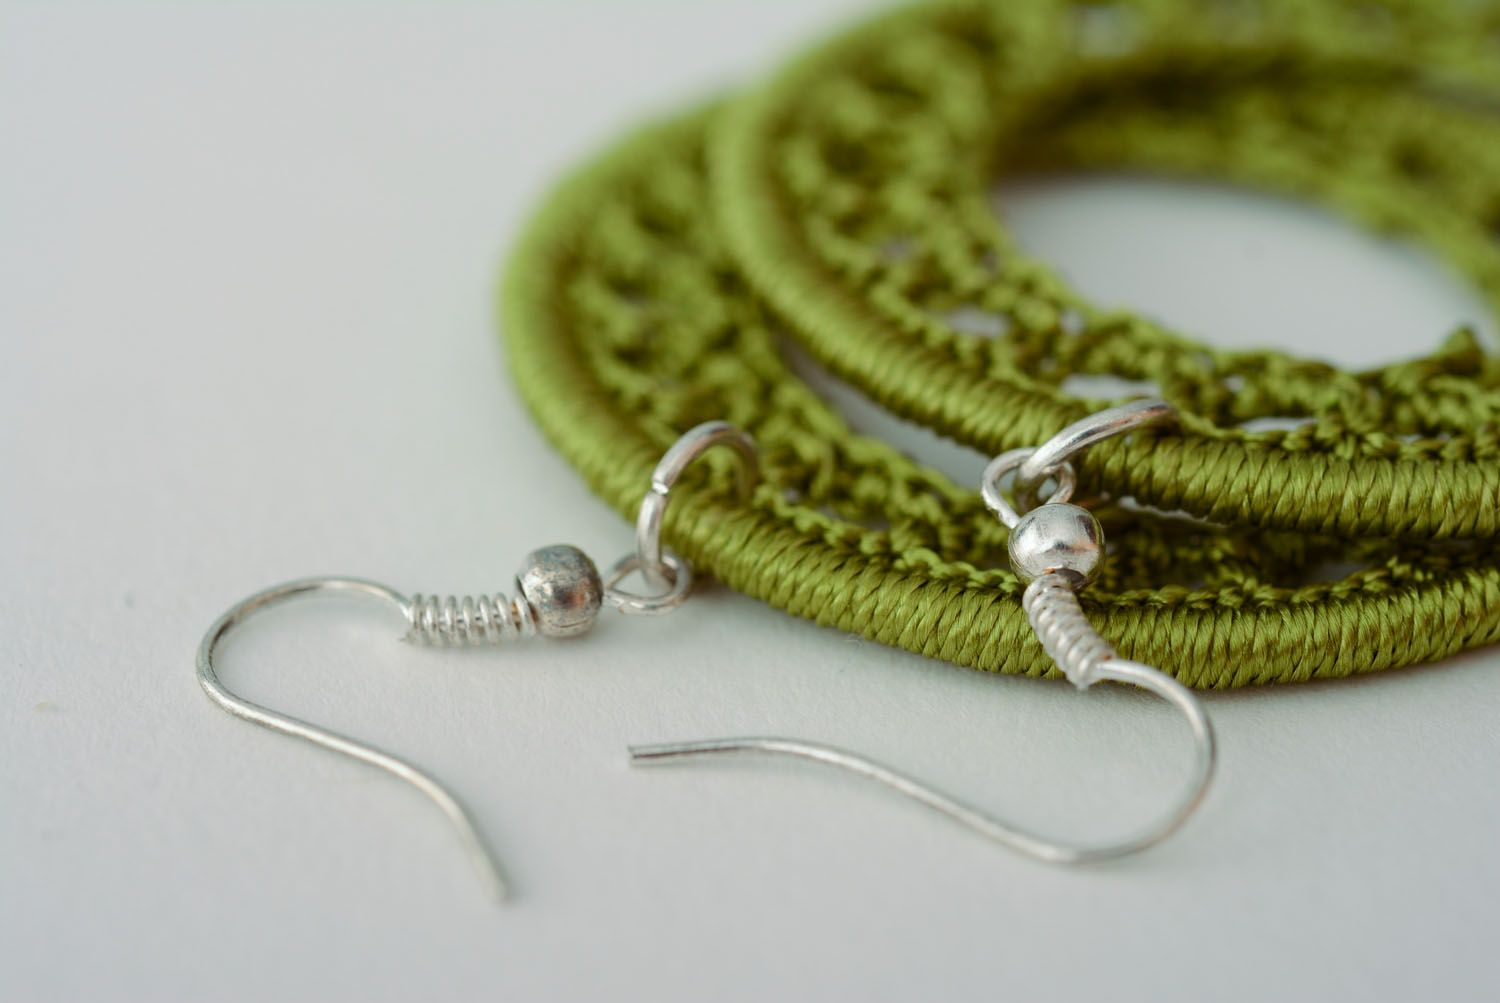 Homemade woven earrings photo 5